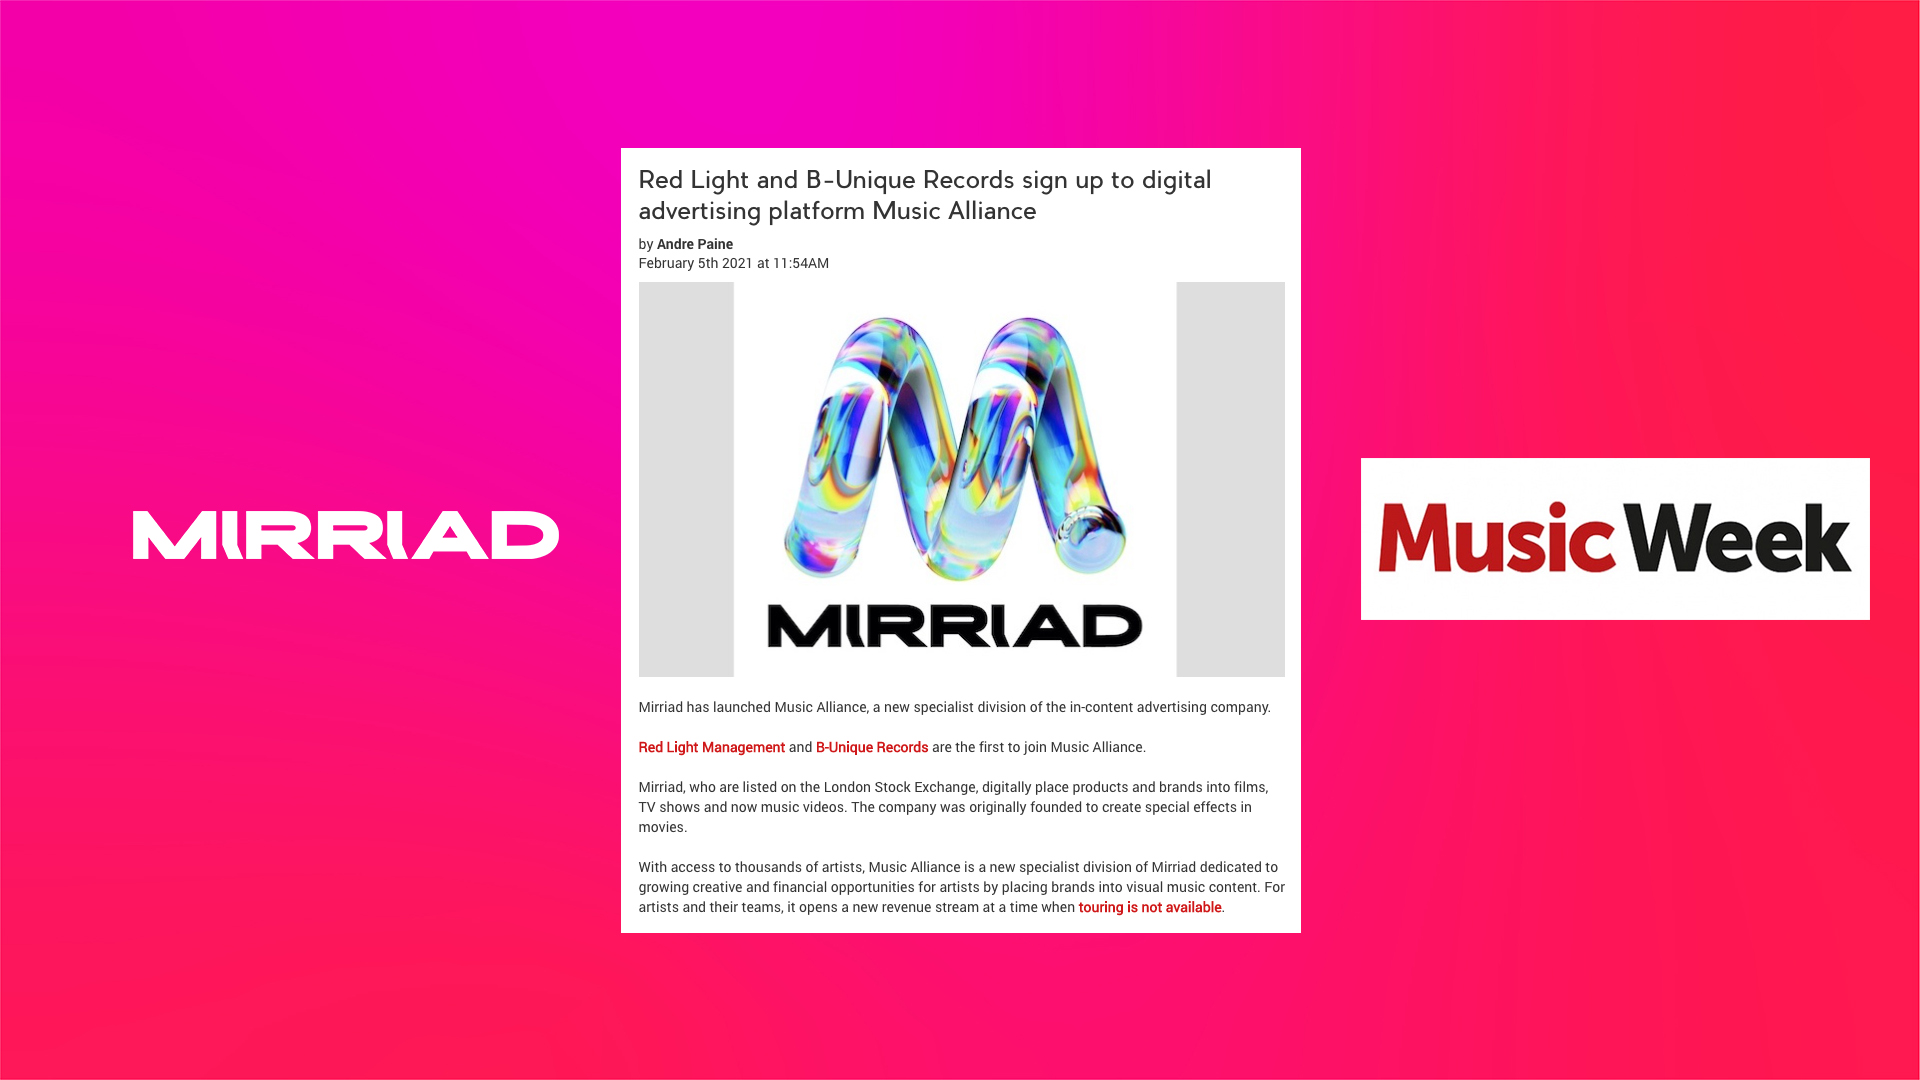 B-Unique Records who have an incredible global roster of artists joins Mirriad's Music Alliance